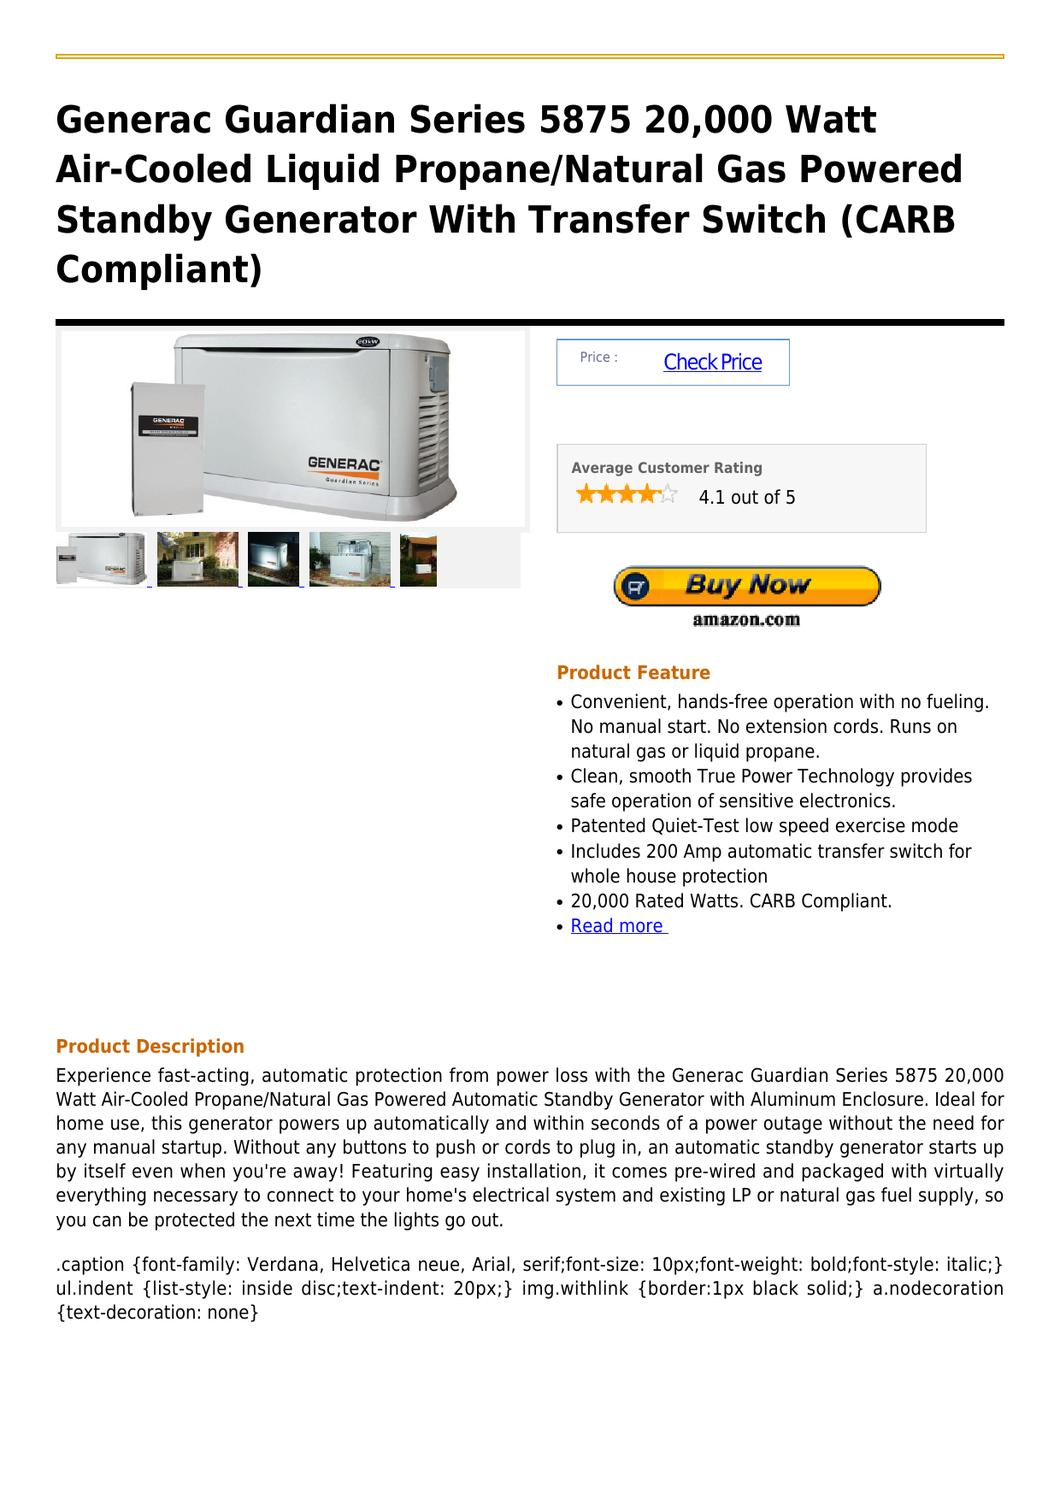 Generac Guardian Series 5875 20,000 Watt Air-Cooled Liquid Propane